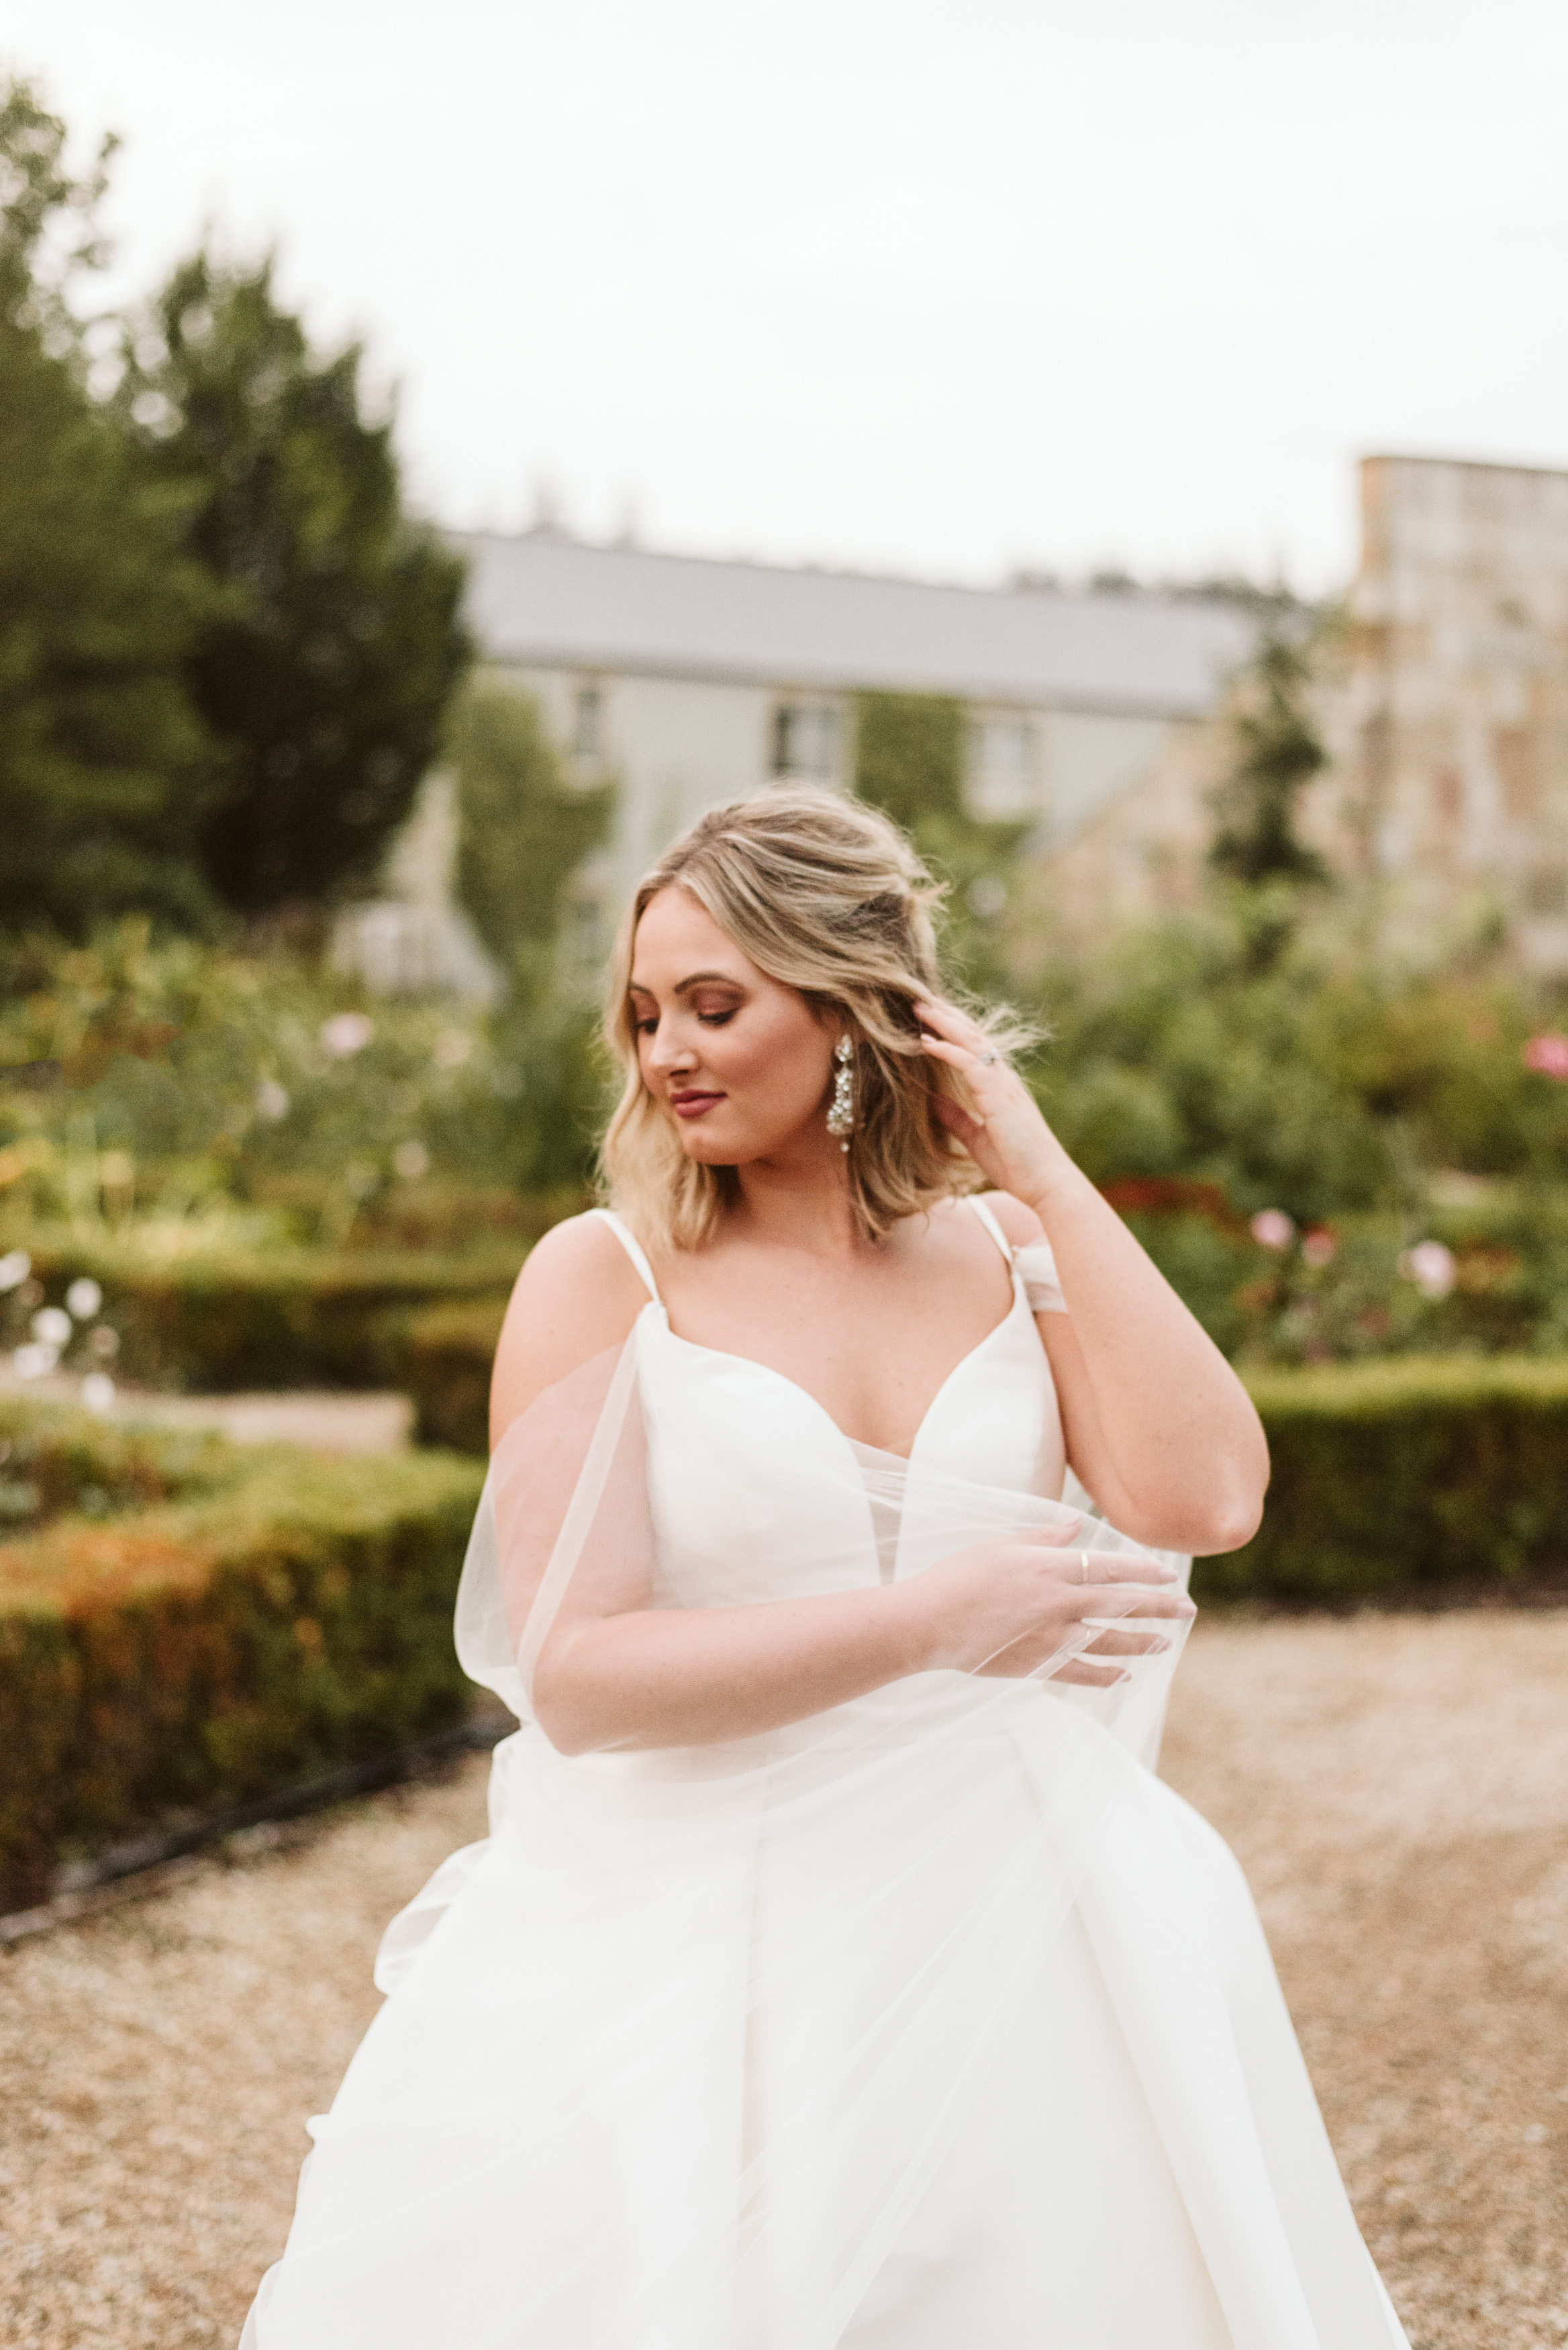 Brideshowing off her sparkly earrings in a mikado ballgown wedding dress and tulle cape at Lough Eske Castle's grounds in Ireland